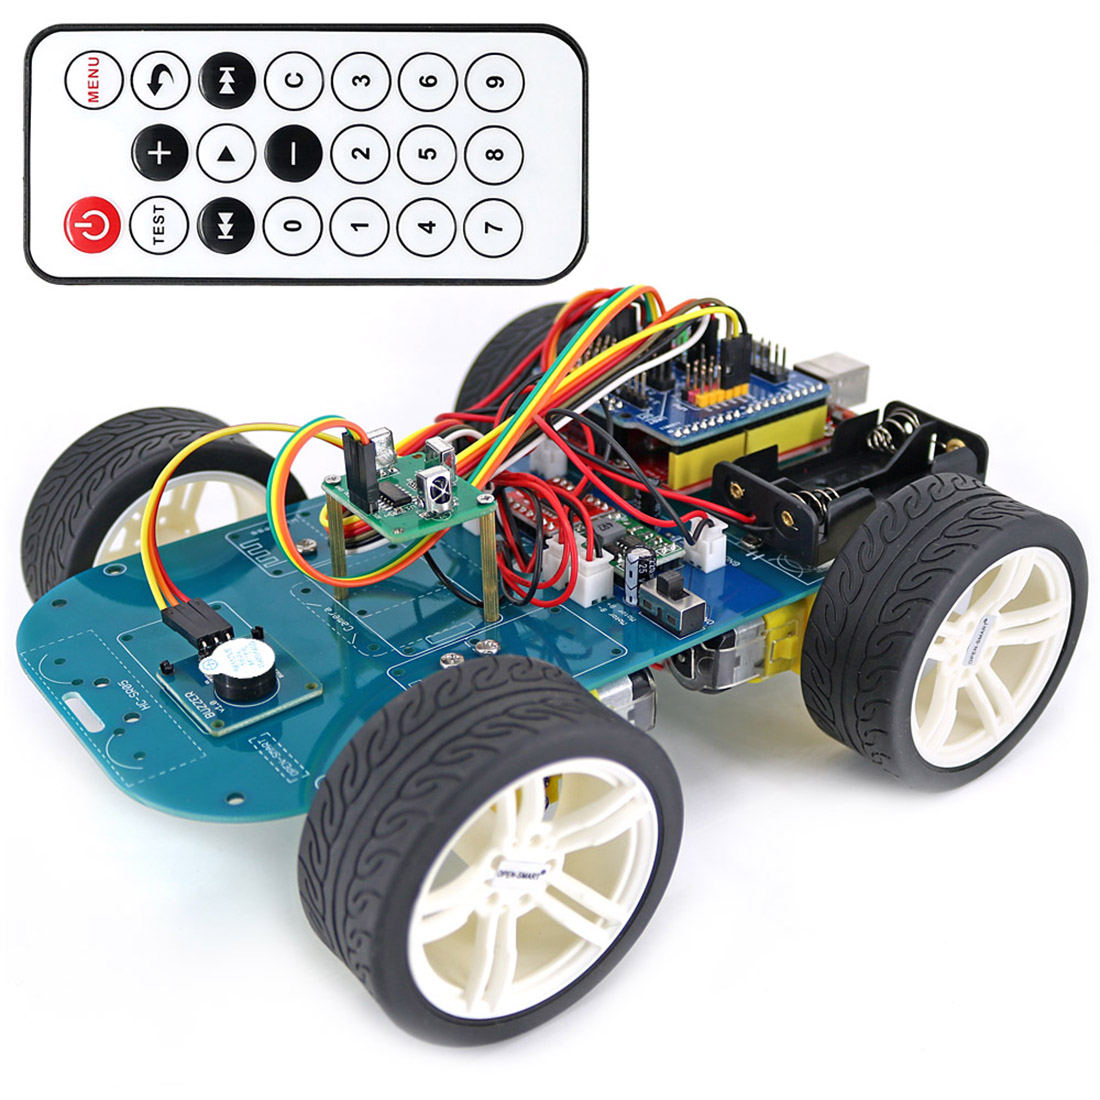 High Tech Programmable Robot Car Toy 4WD Wireless IR Remote Control Smart Car Kit with Tutorial for Arduino for R3 Nano